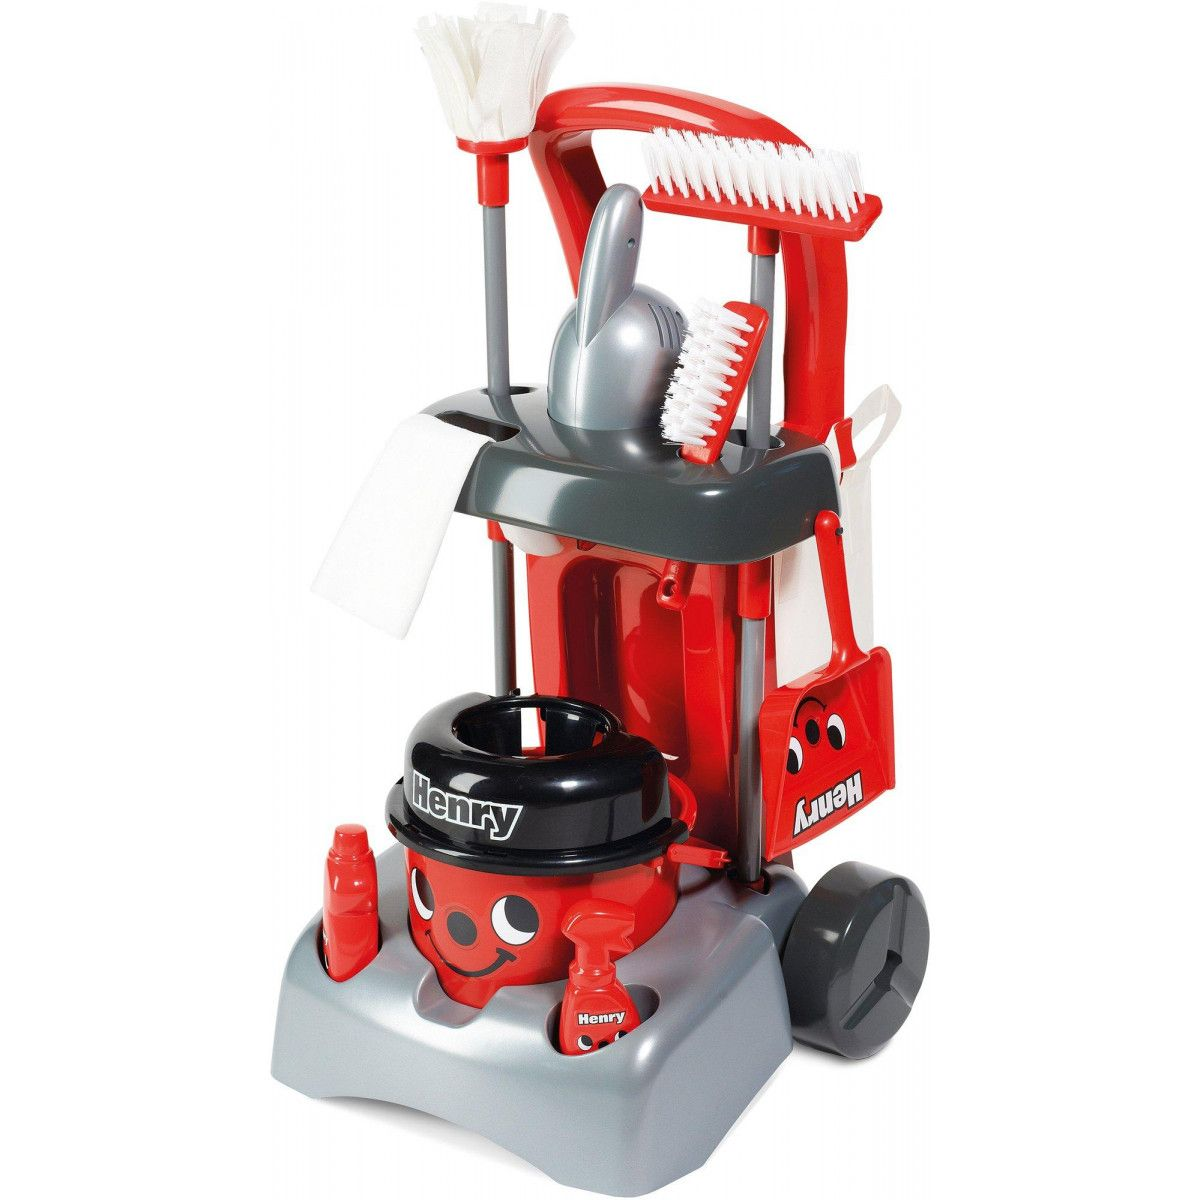 HENRY VACUUM CLEANER KIDS INCLUDES BRUSH AND DUSTPAN 100/% OFFICIAL NEW